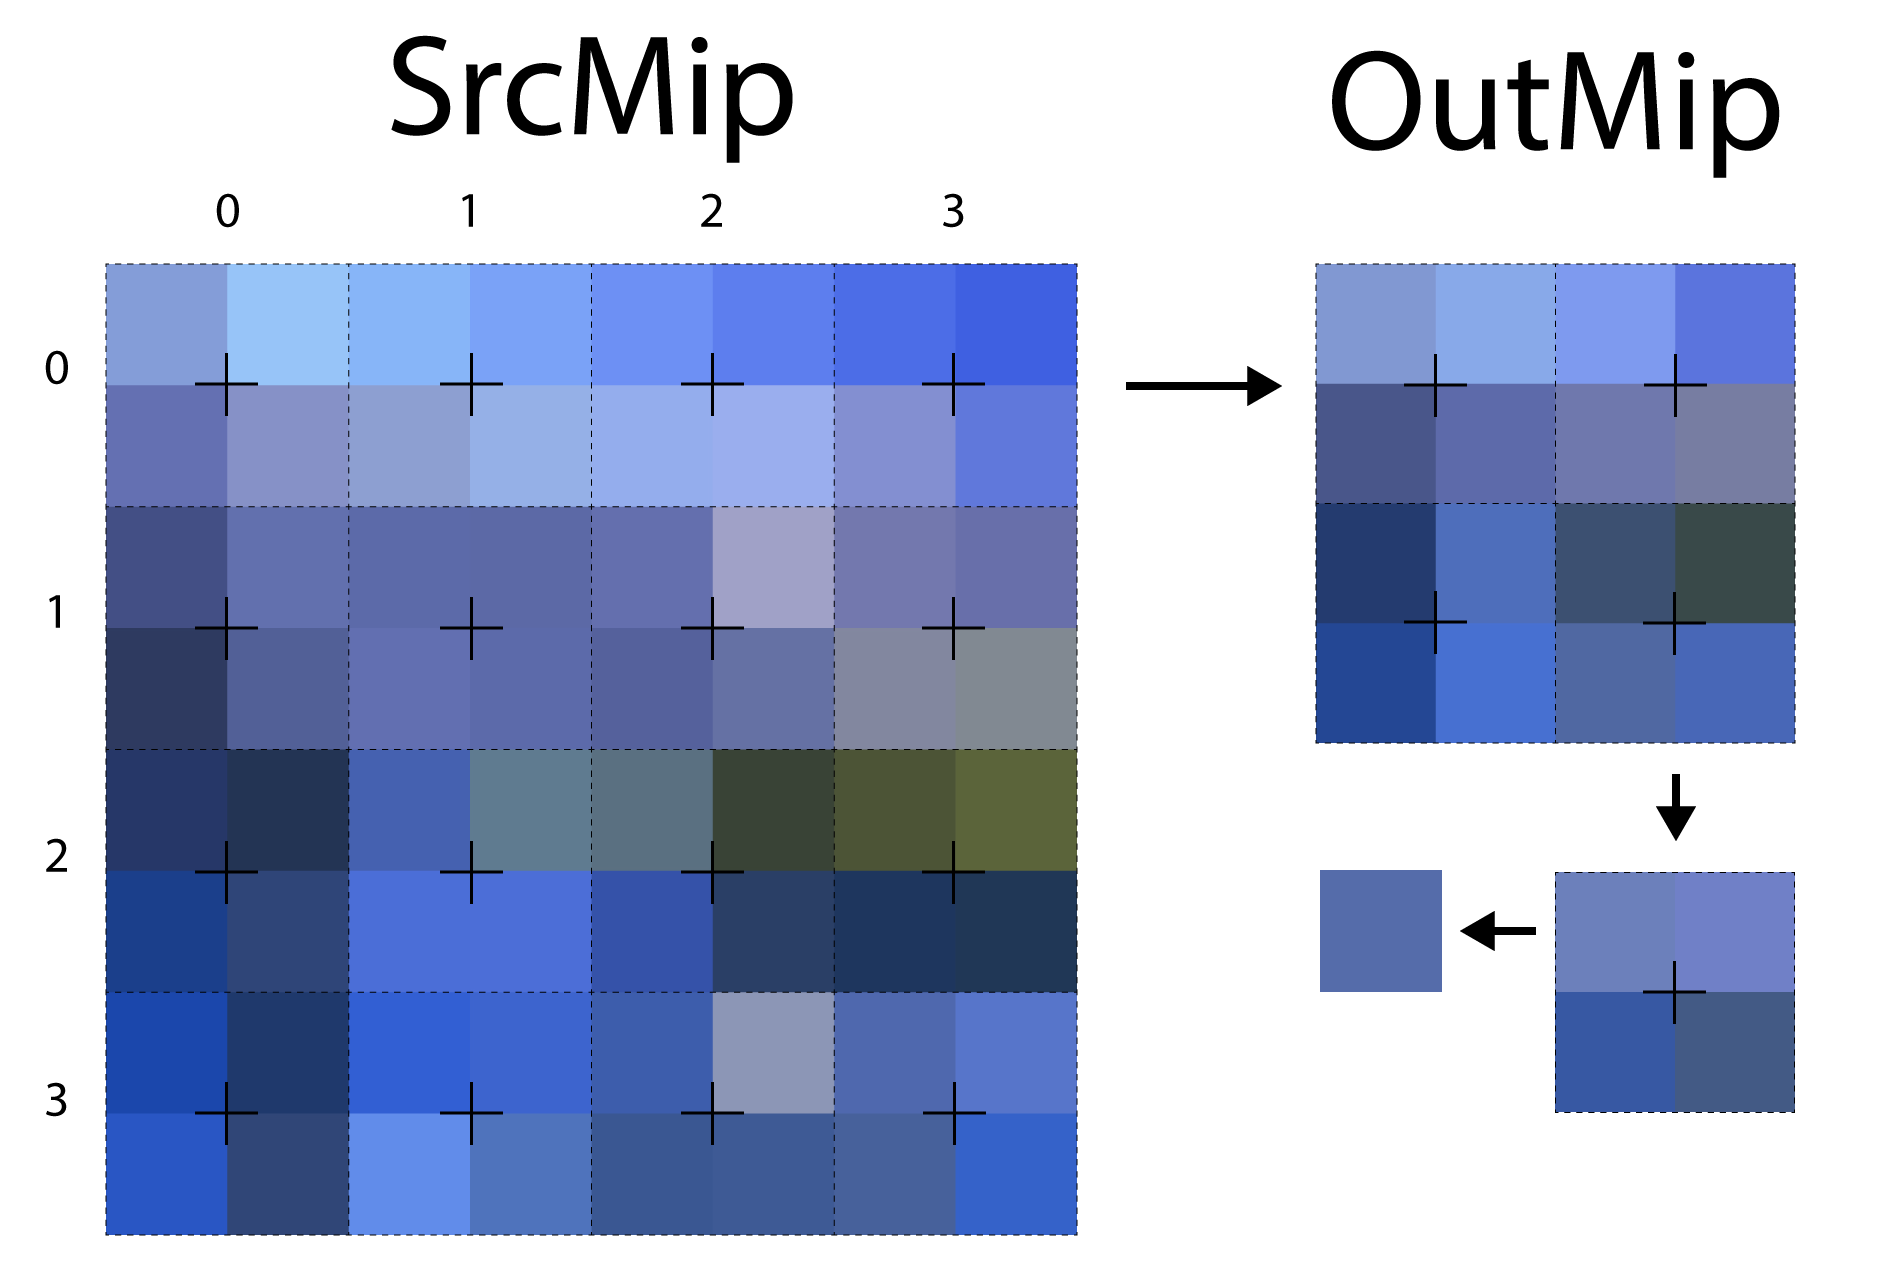 The image shows the sampling pattern that is used when both the width and height of the source mip are even.